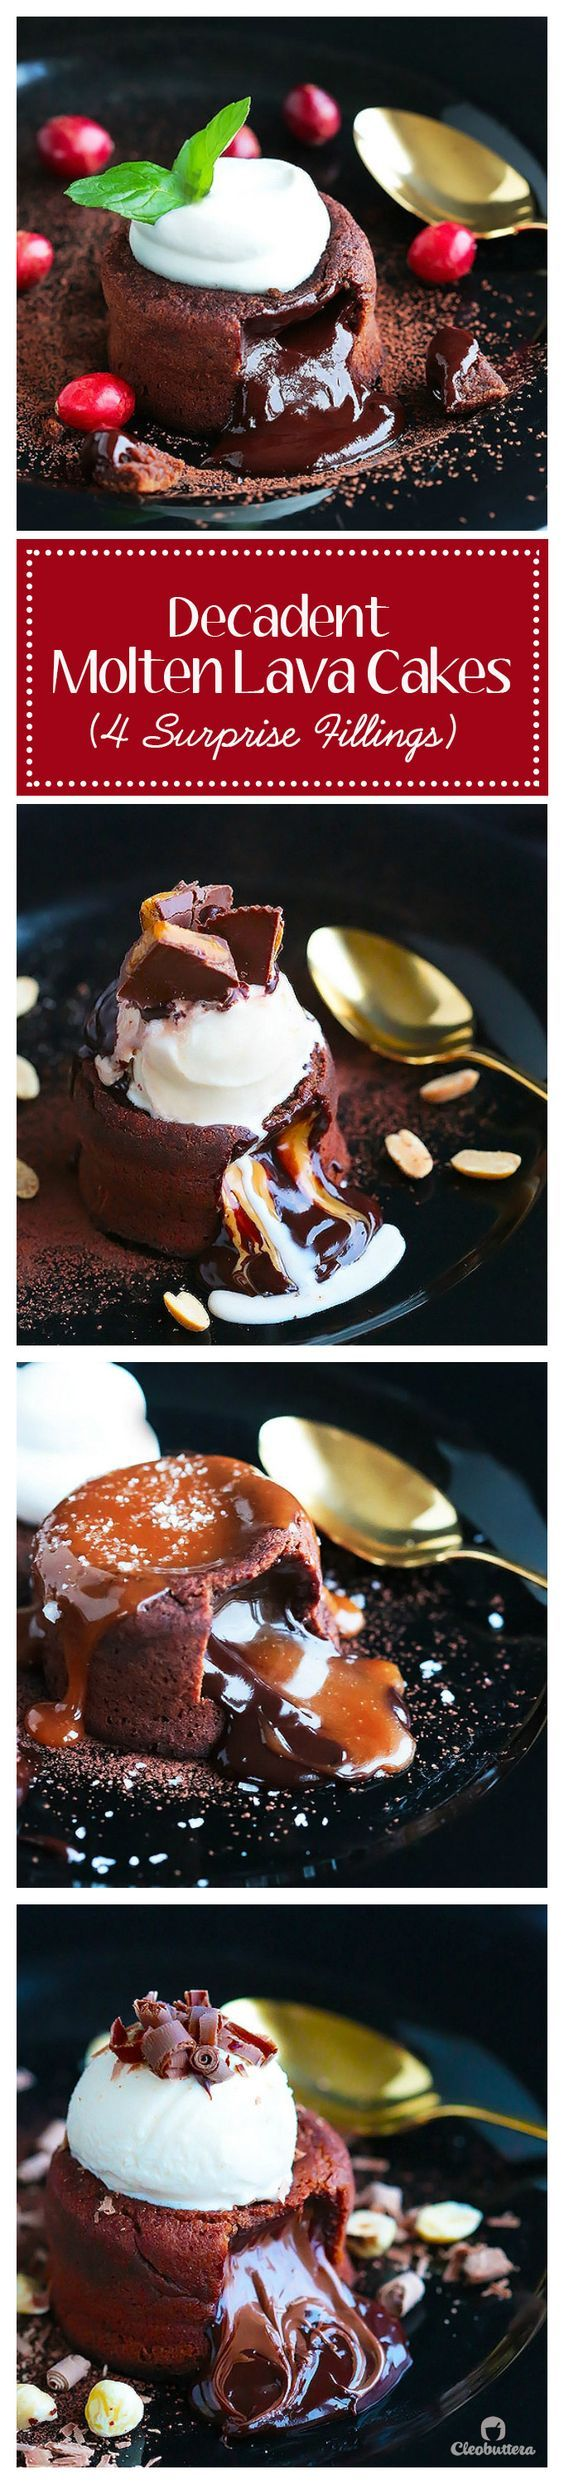 Decadent Molten Lava Cakes (4 surprise fillings)